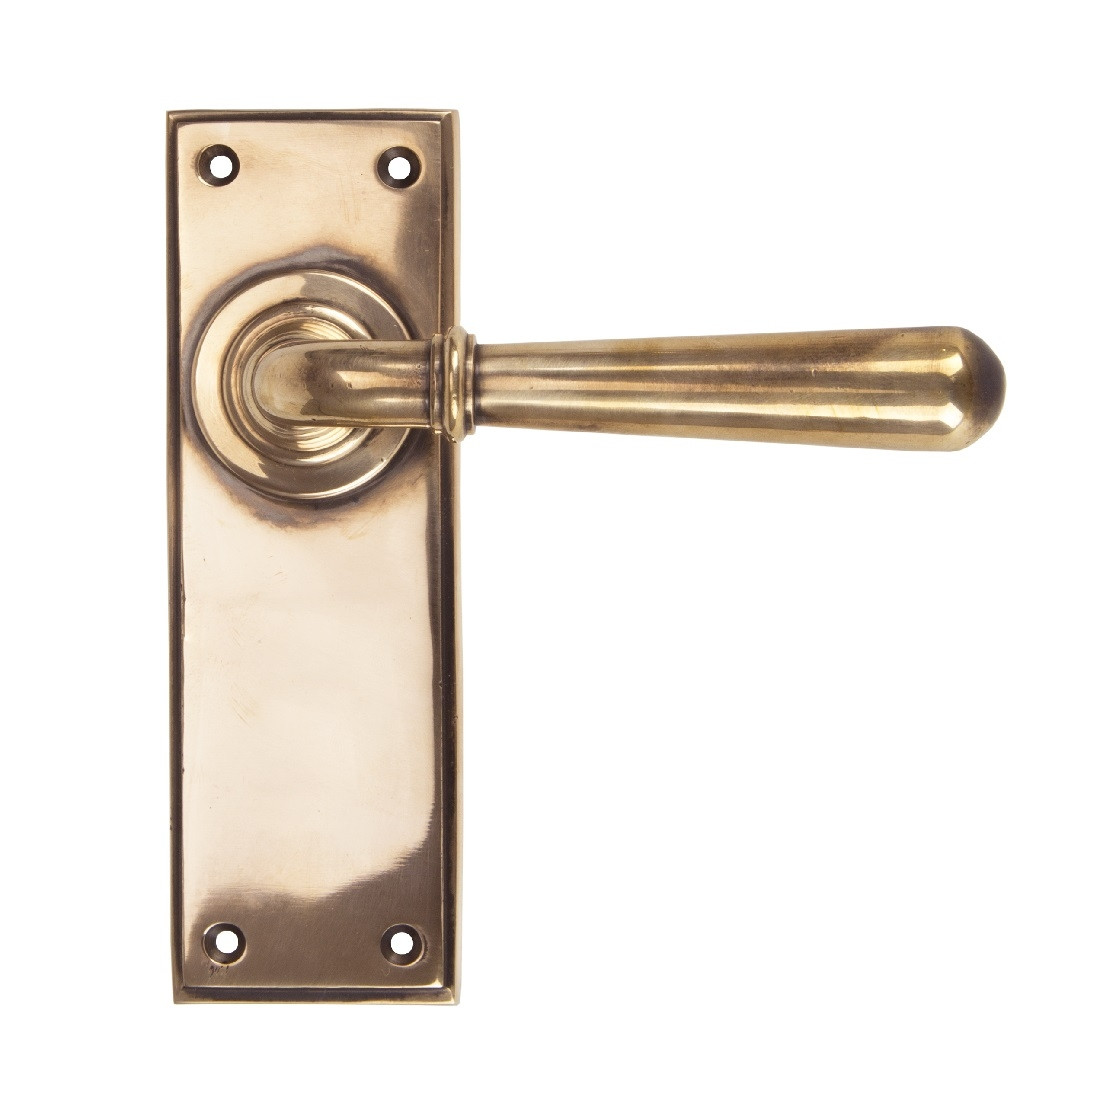 From The Anvil Newbury Latch Handles - Polished Bronze